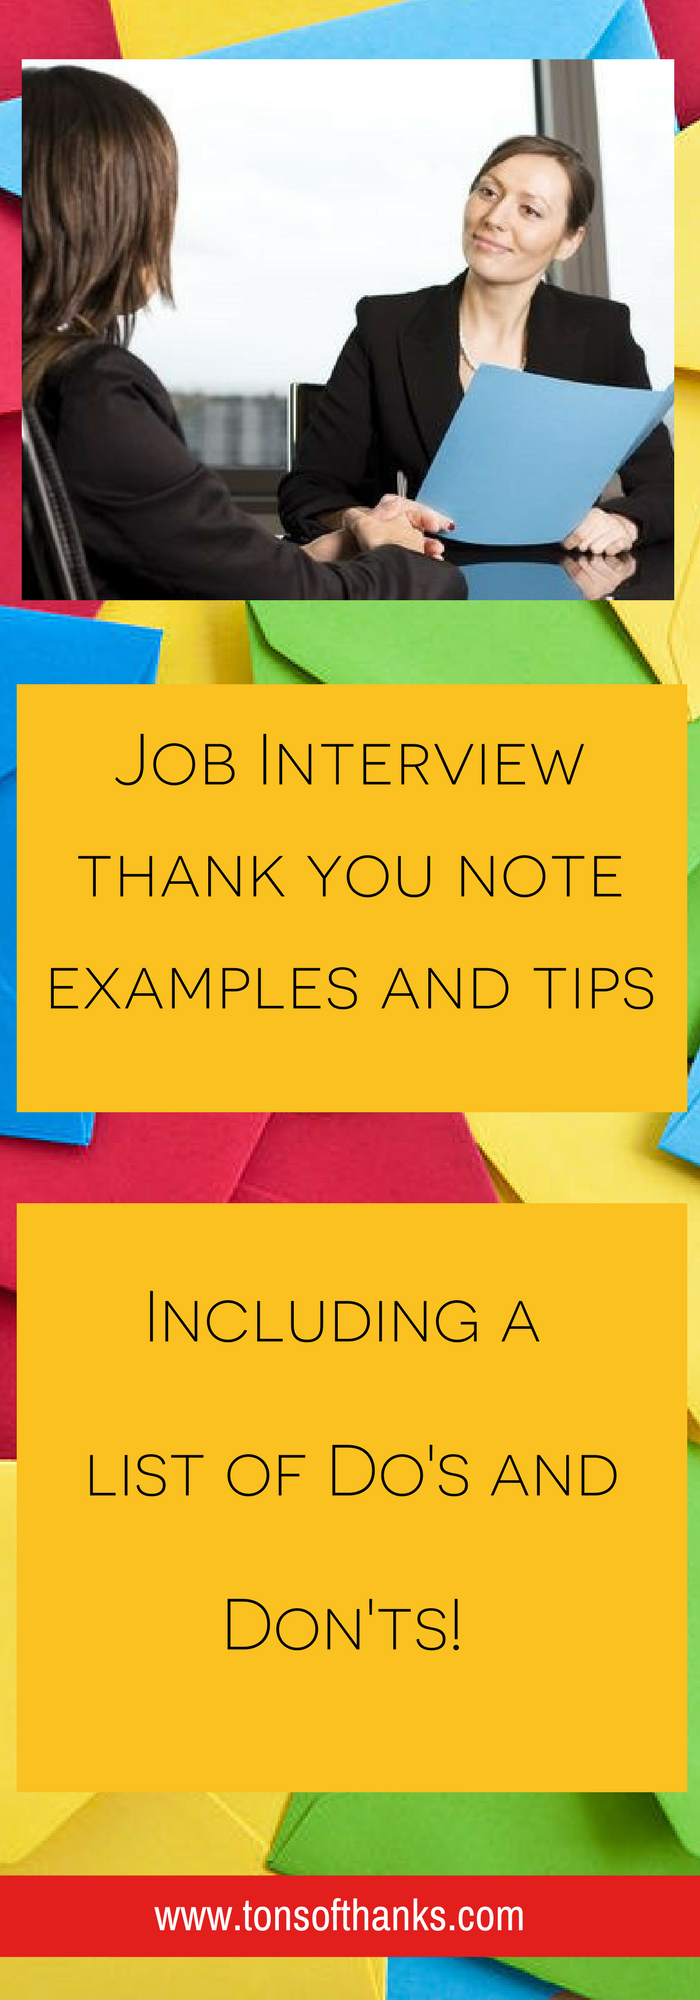 post job interview thank you note examples and tips free resume word dietetic internship example career objective for fresh graduate